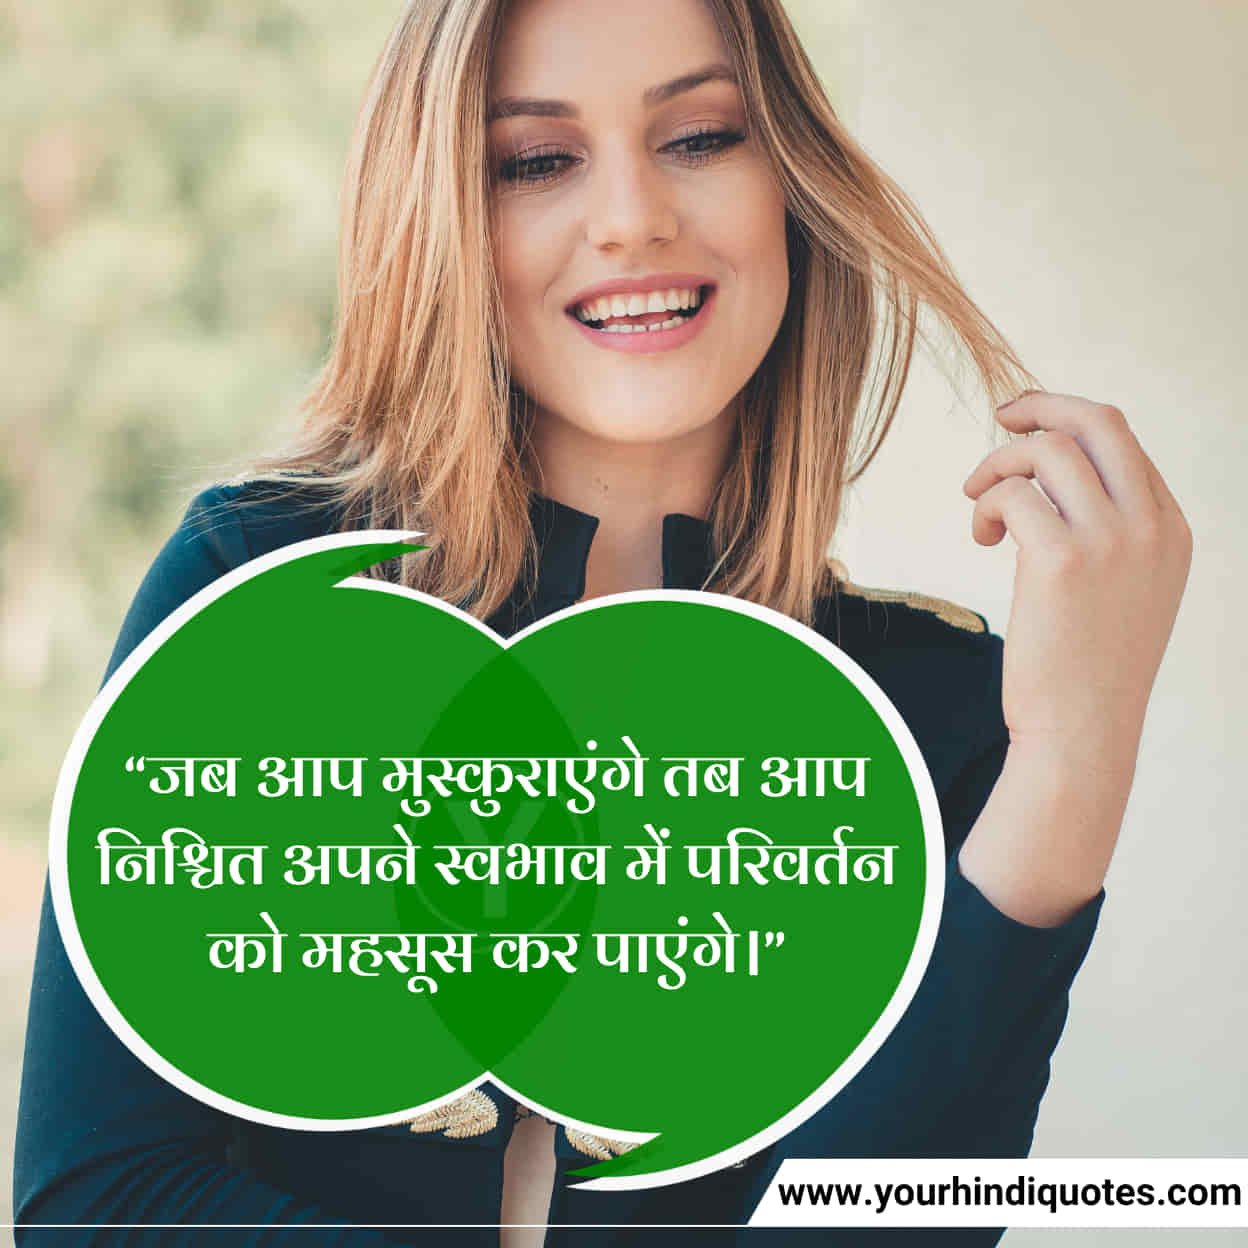 Happy Smile Quotes In Hindi